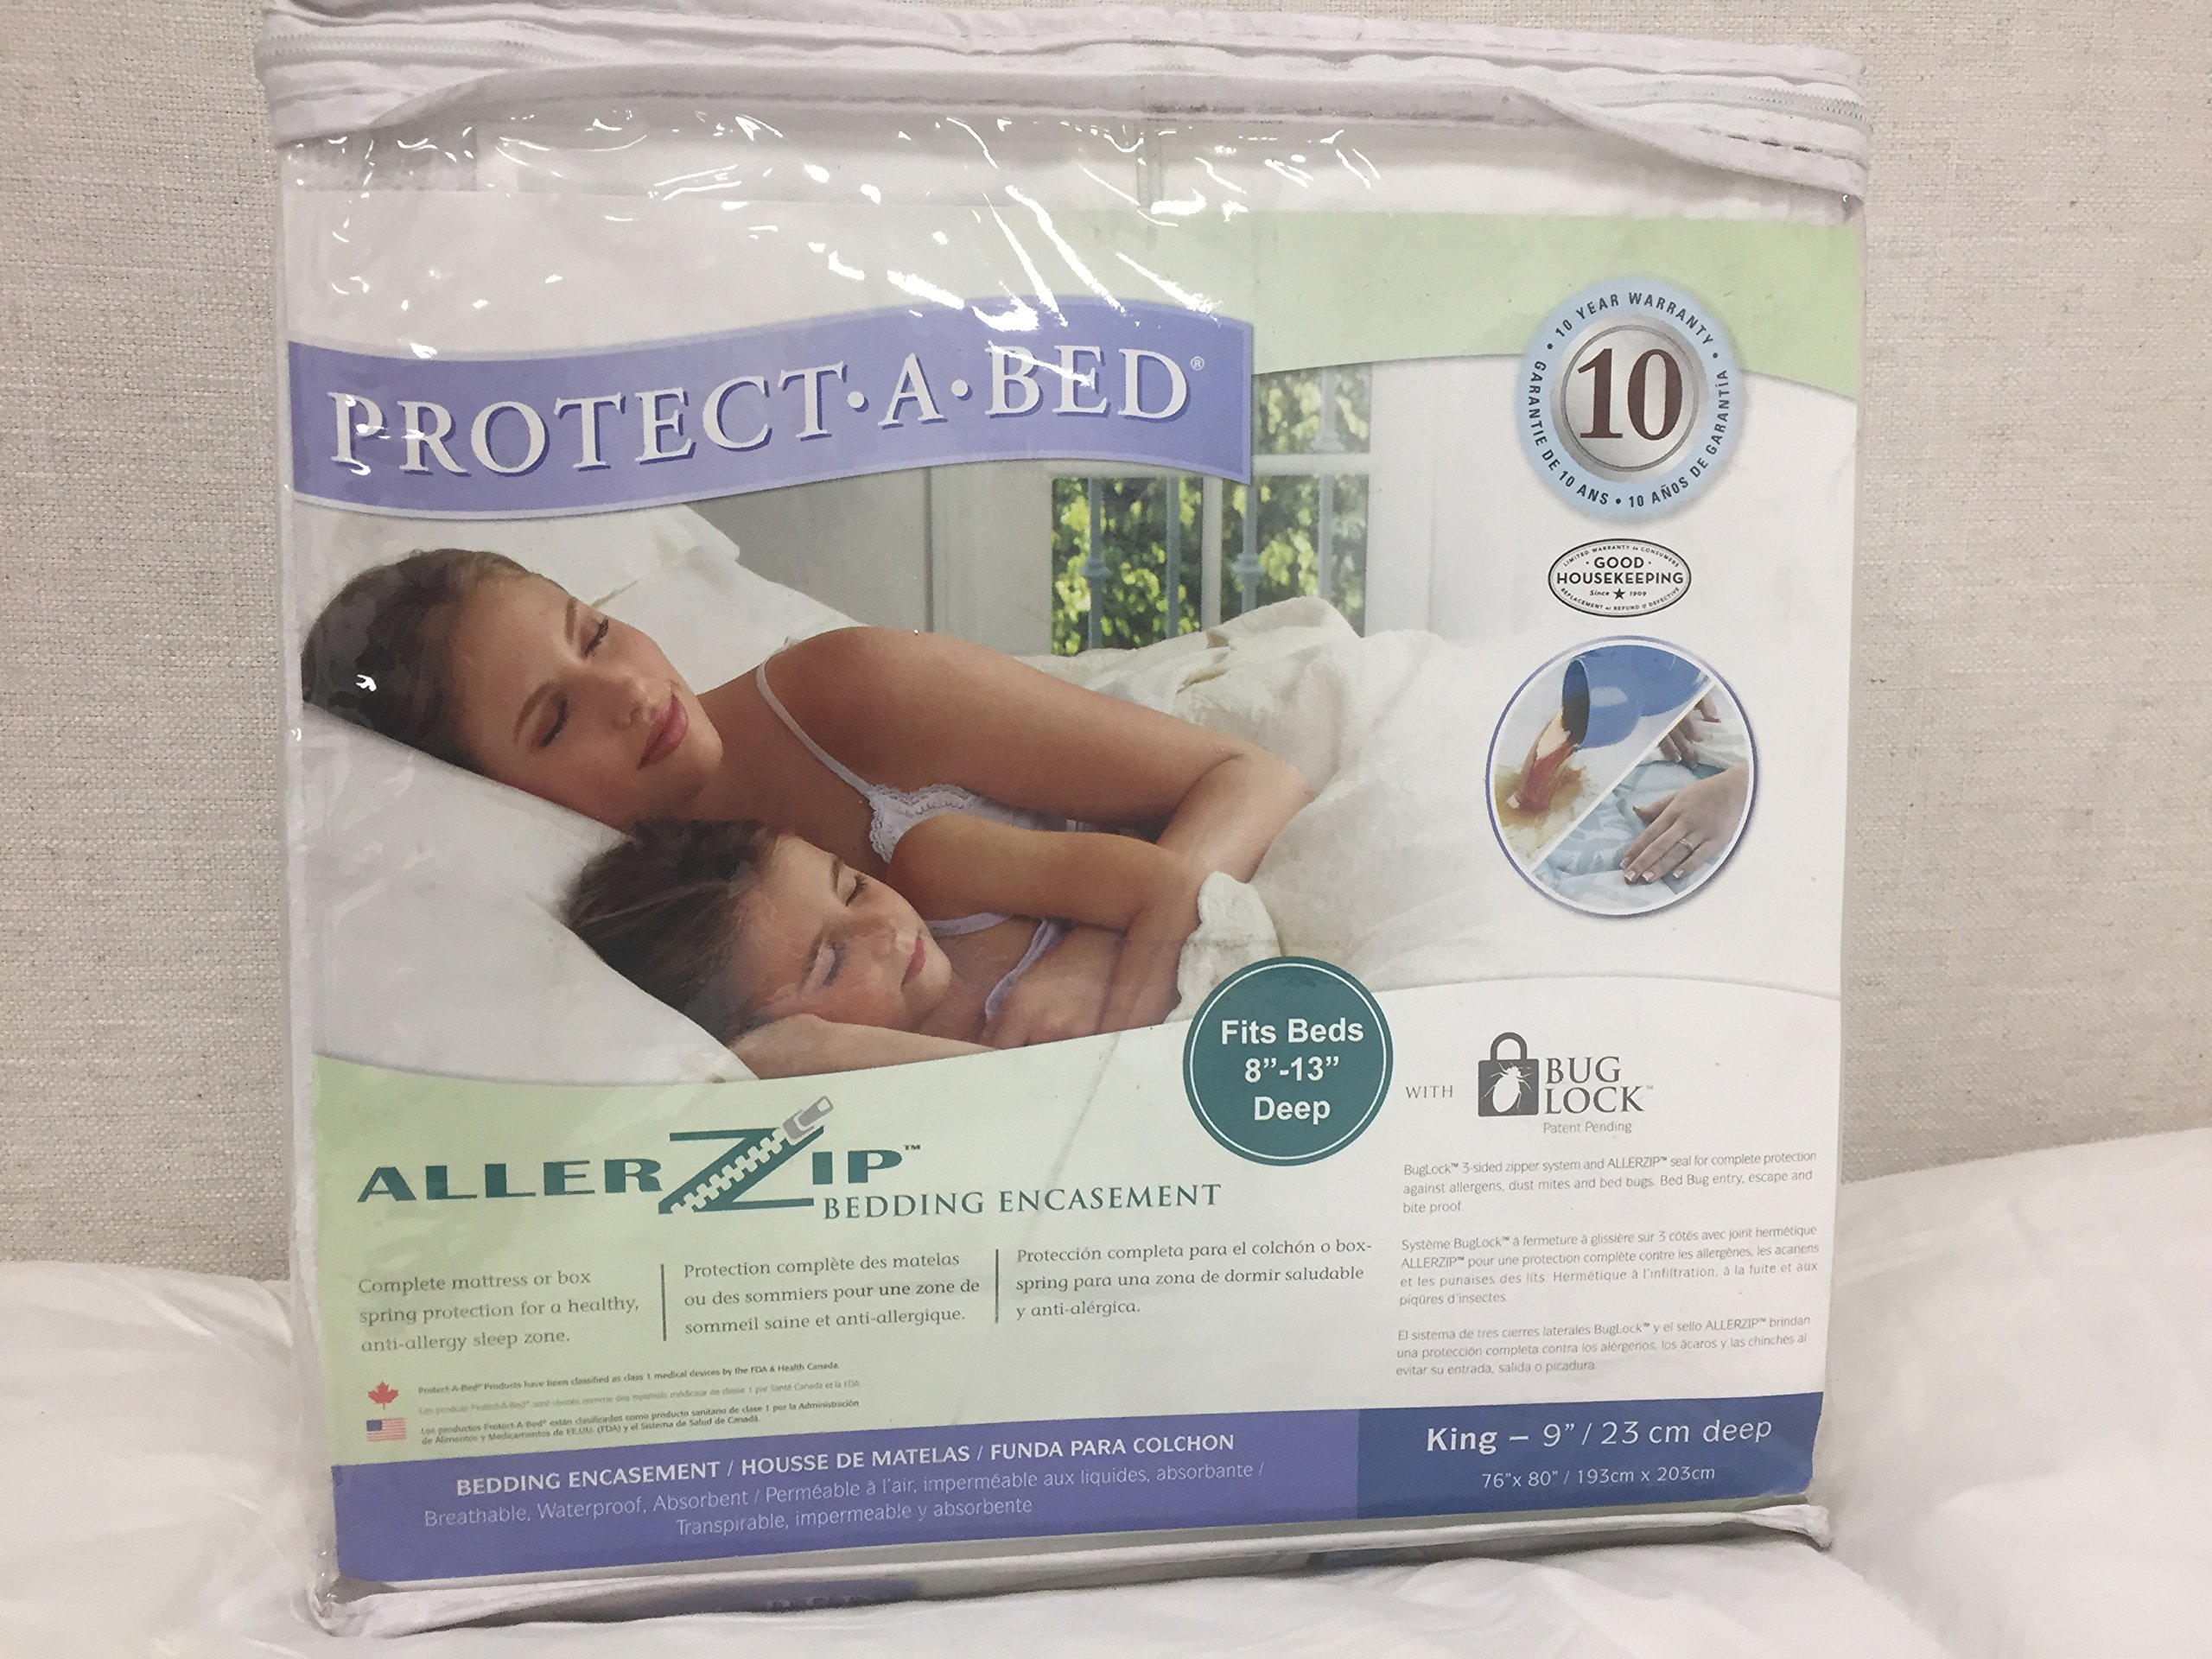 Protect-A-Bed Allerzip Mattress Encasement, King-9'': 76''x80'' (Fits Beds 8''-13'' Deep)